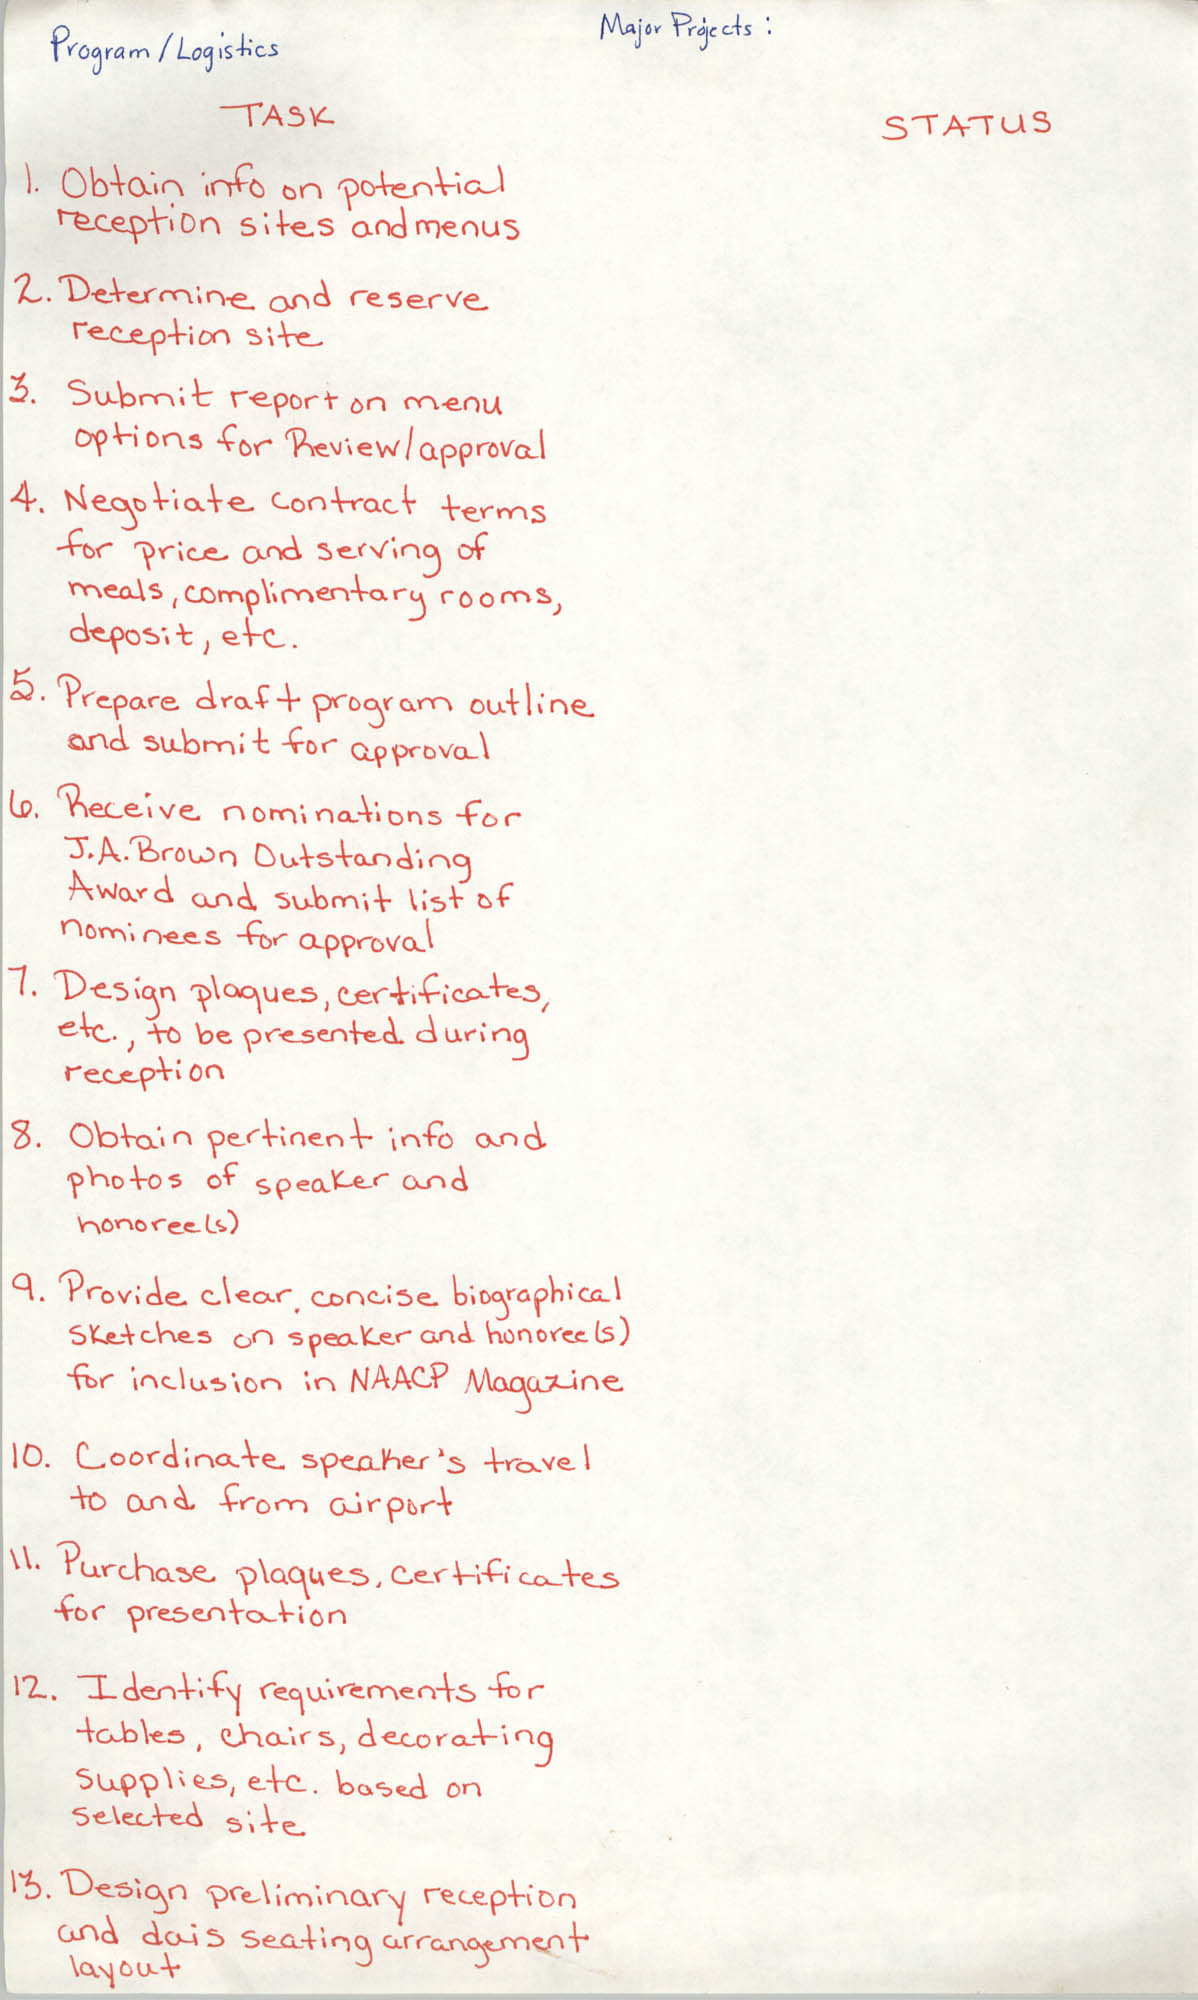 Handwritten List of Tasks, Program/Logistics